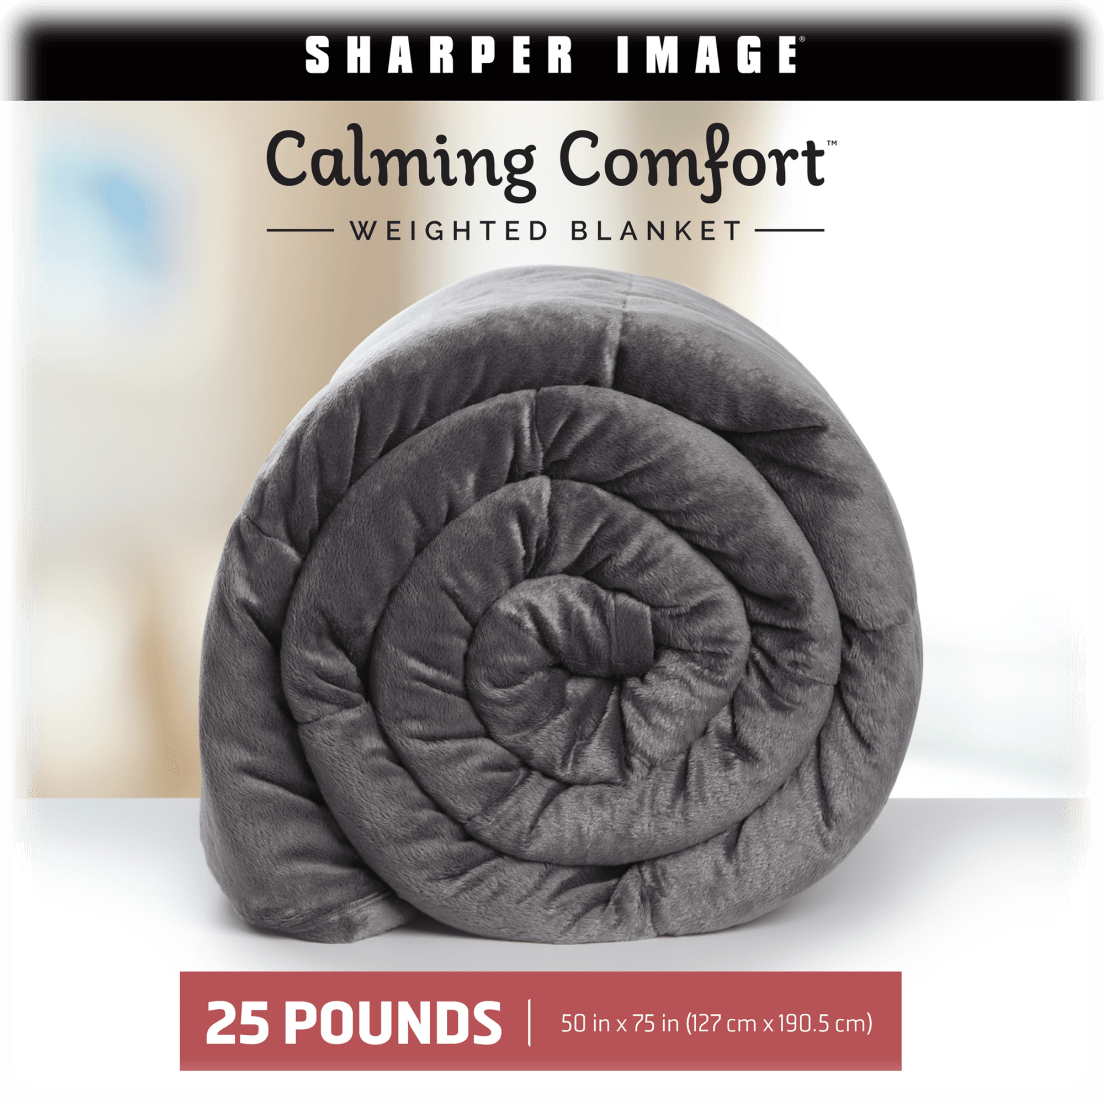 43b49d4c53a Sharper Image Calming Comfort Weighted Blankets - 25 lbs